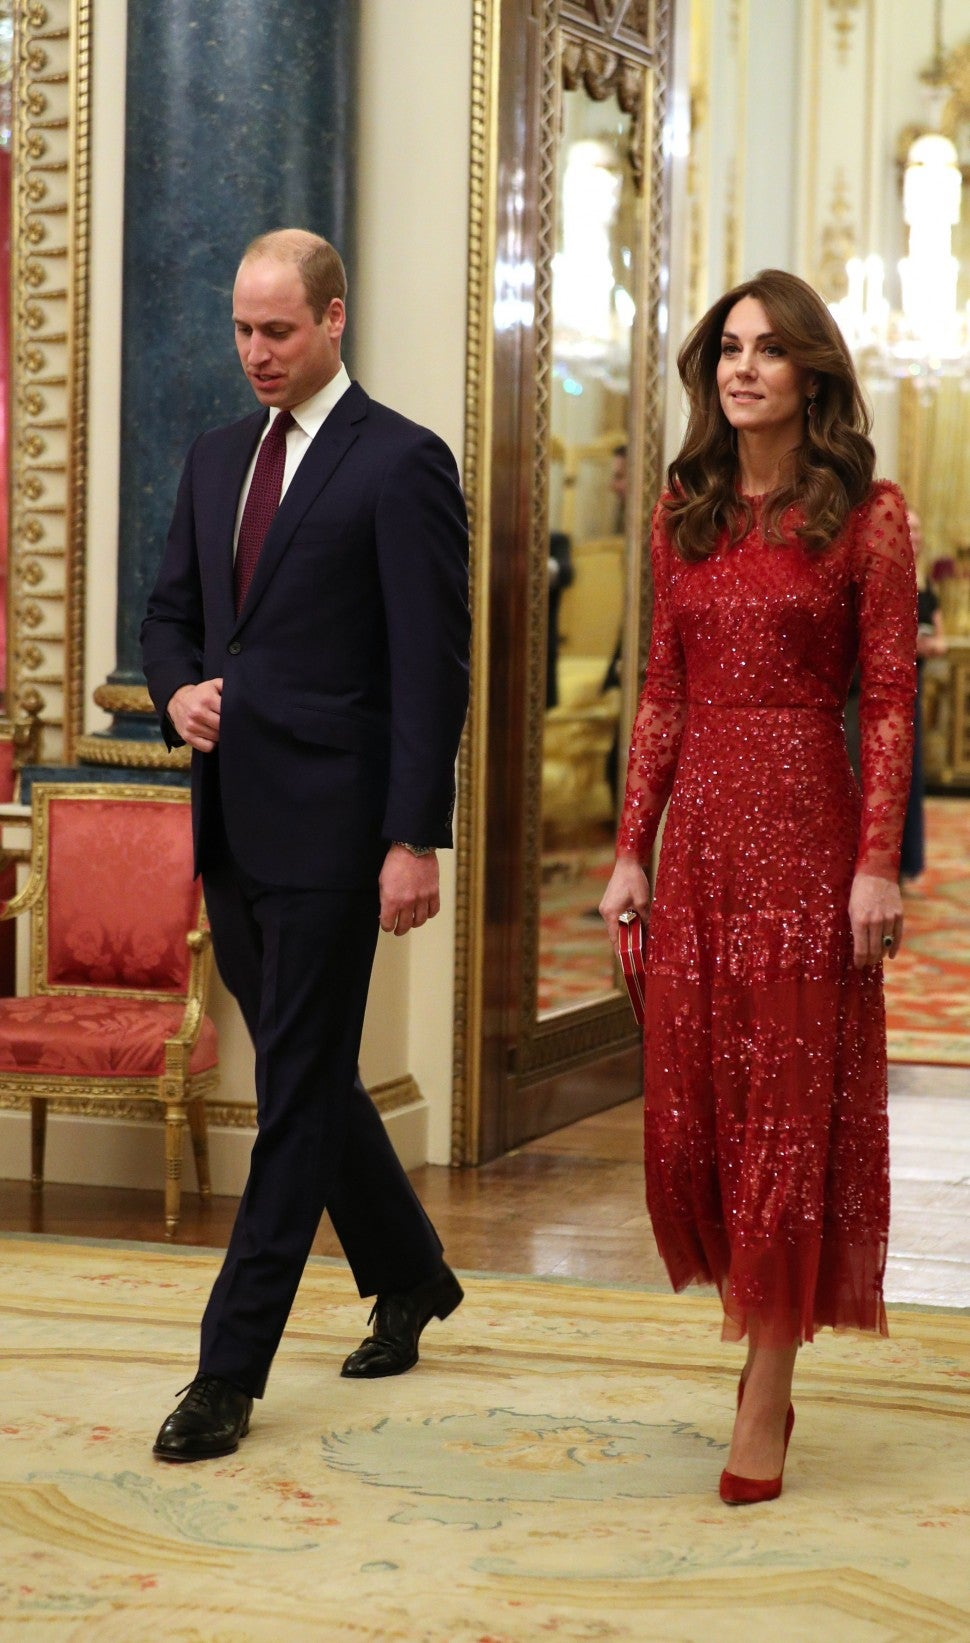 Prince William and Kate Middleton at the U.K.-Africa Summit reception.